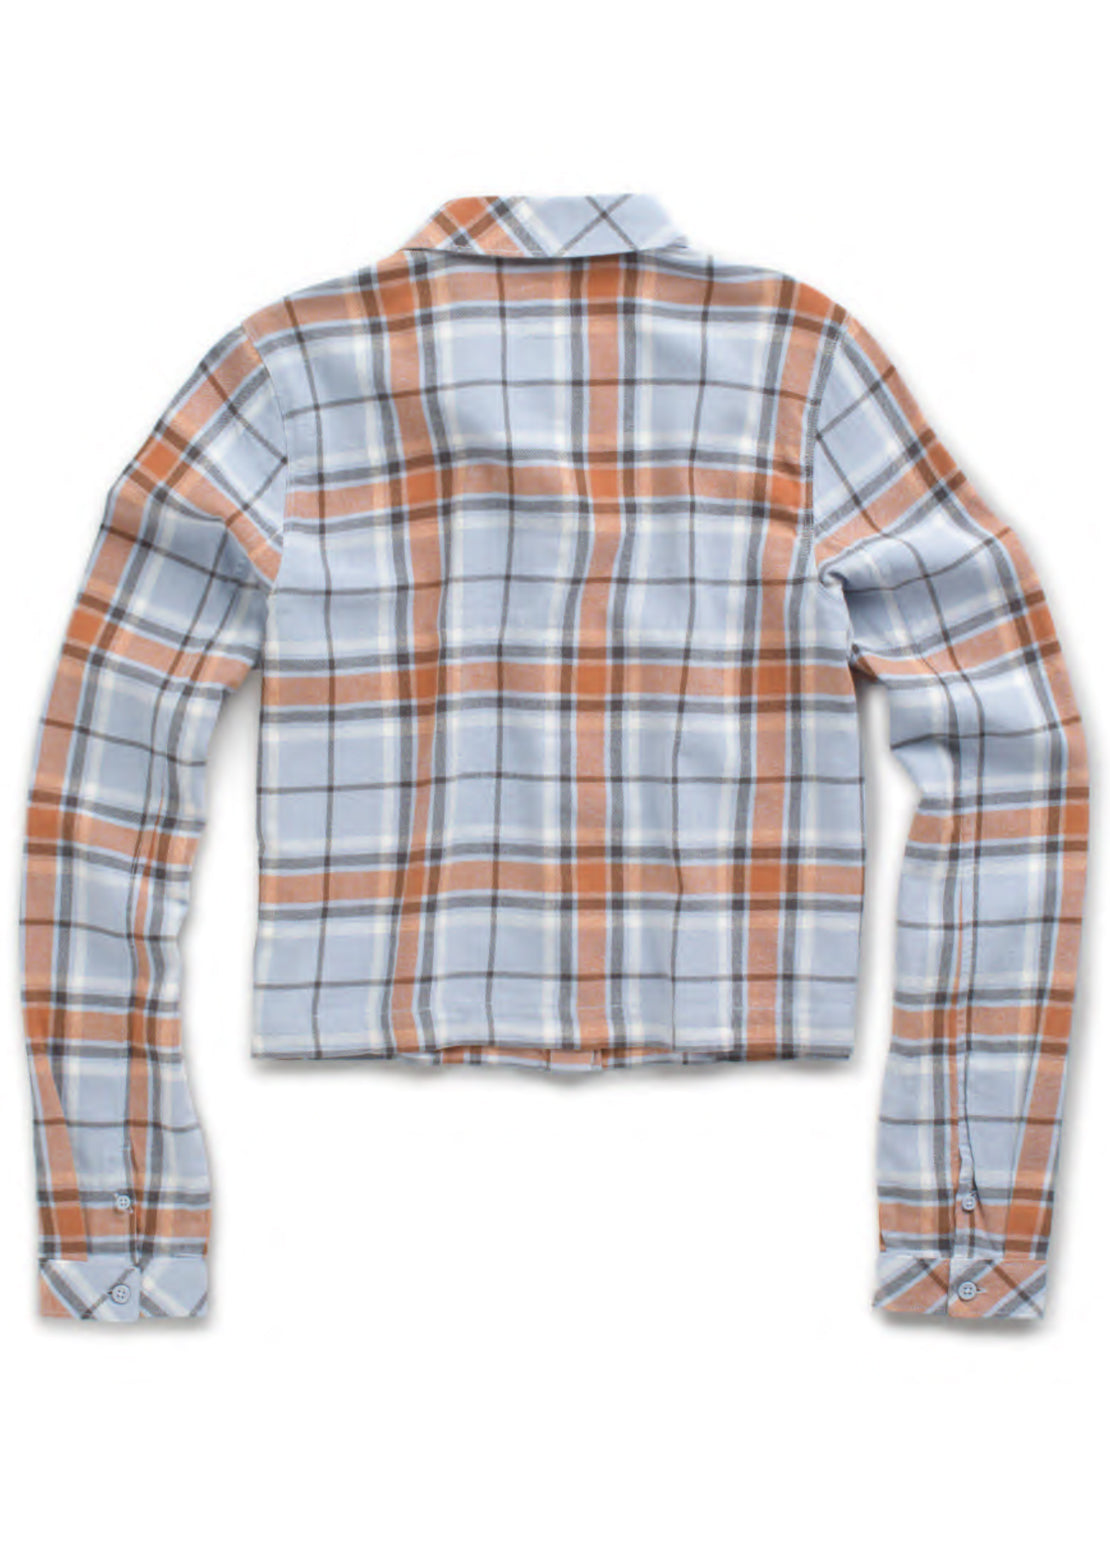 Vans Women's Box Car II Flannel Shirt Zen Blue